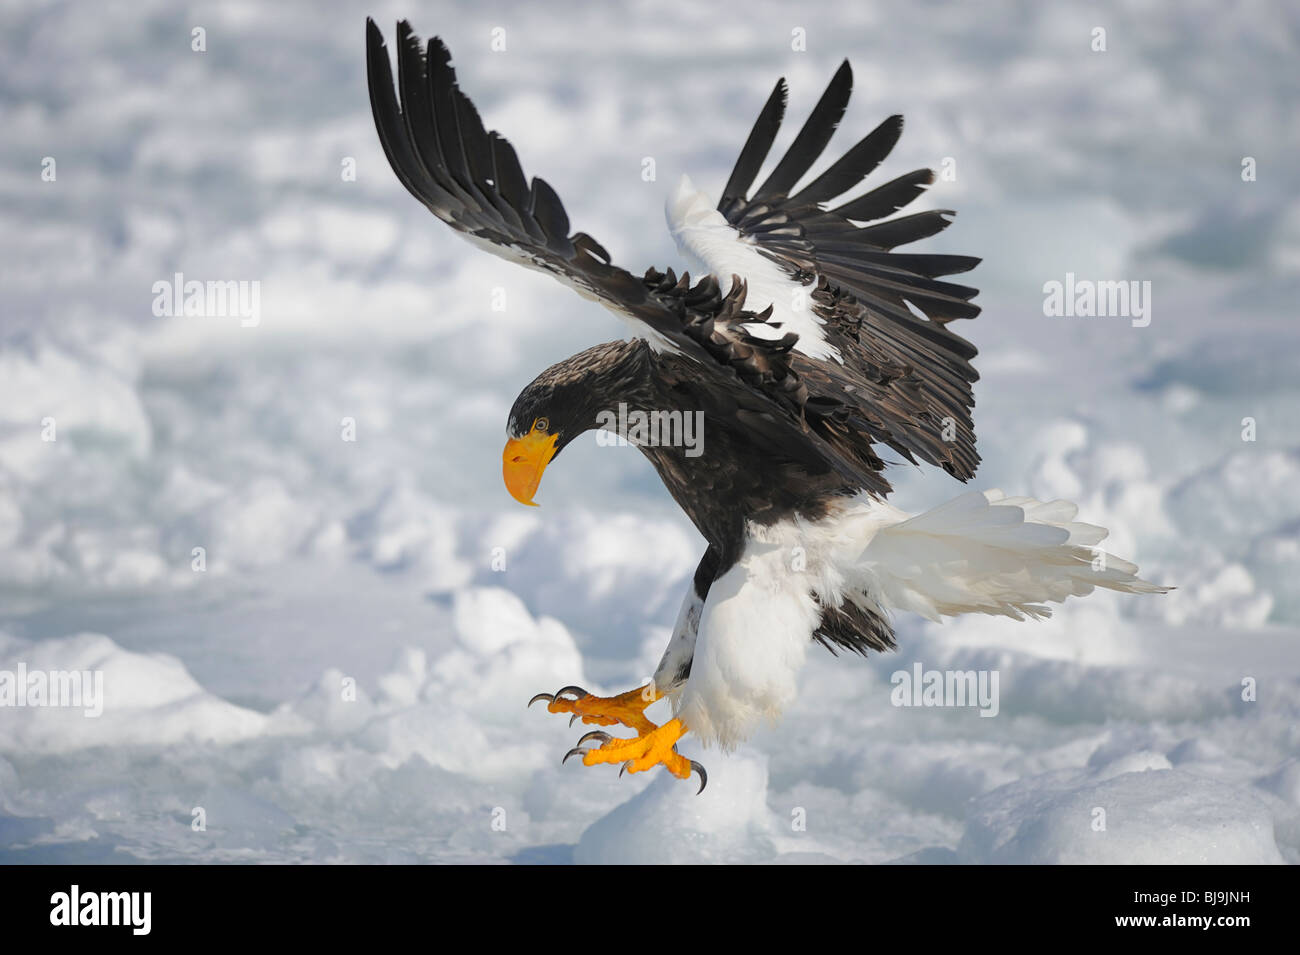 Eagle Wings Stock Photos & Eagle Wings Stock Images - Alamy